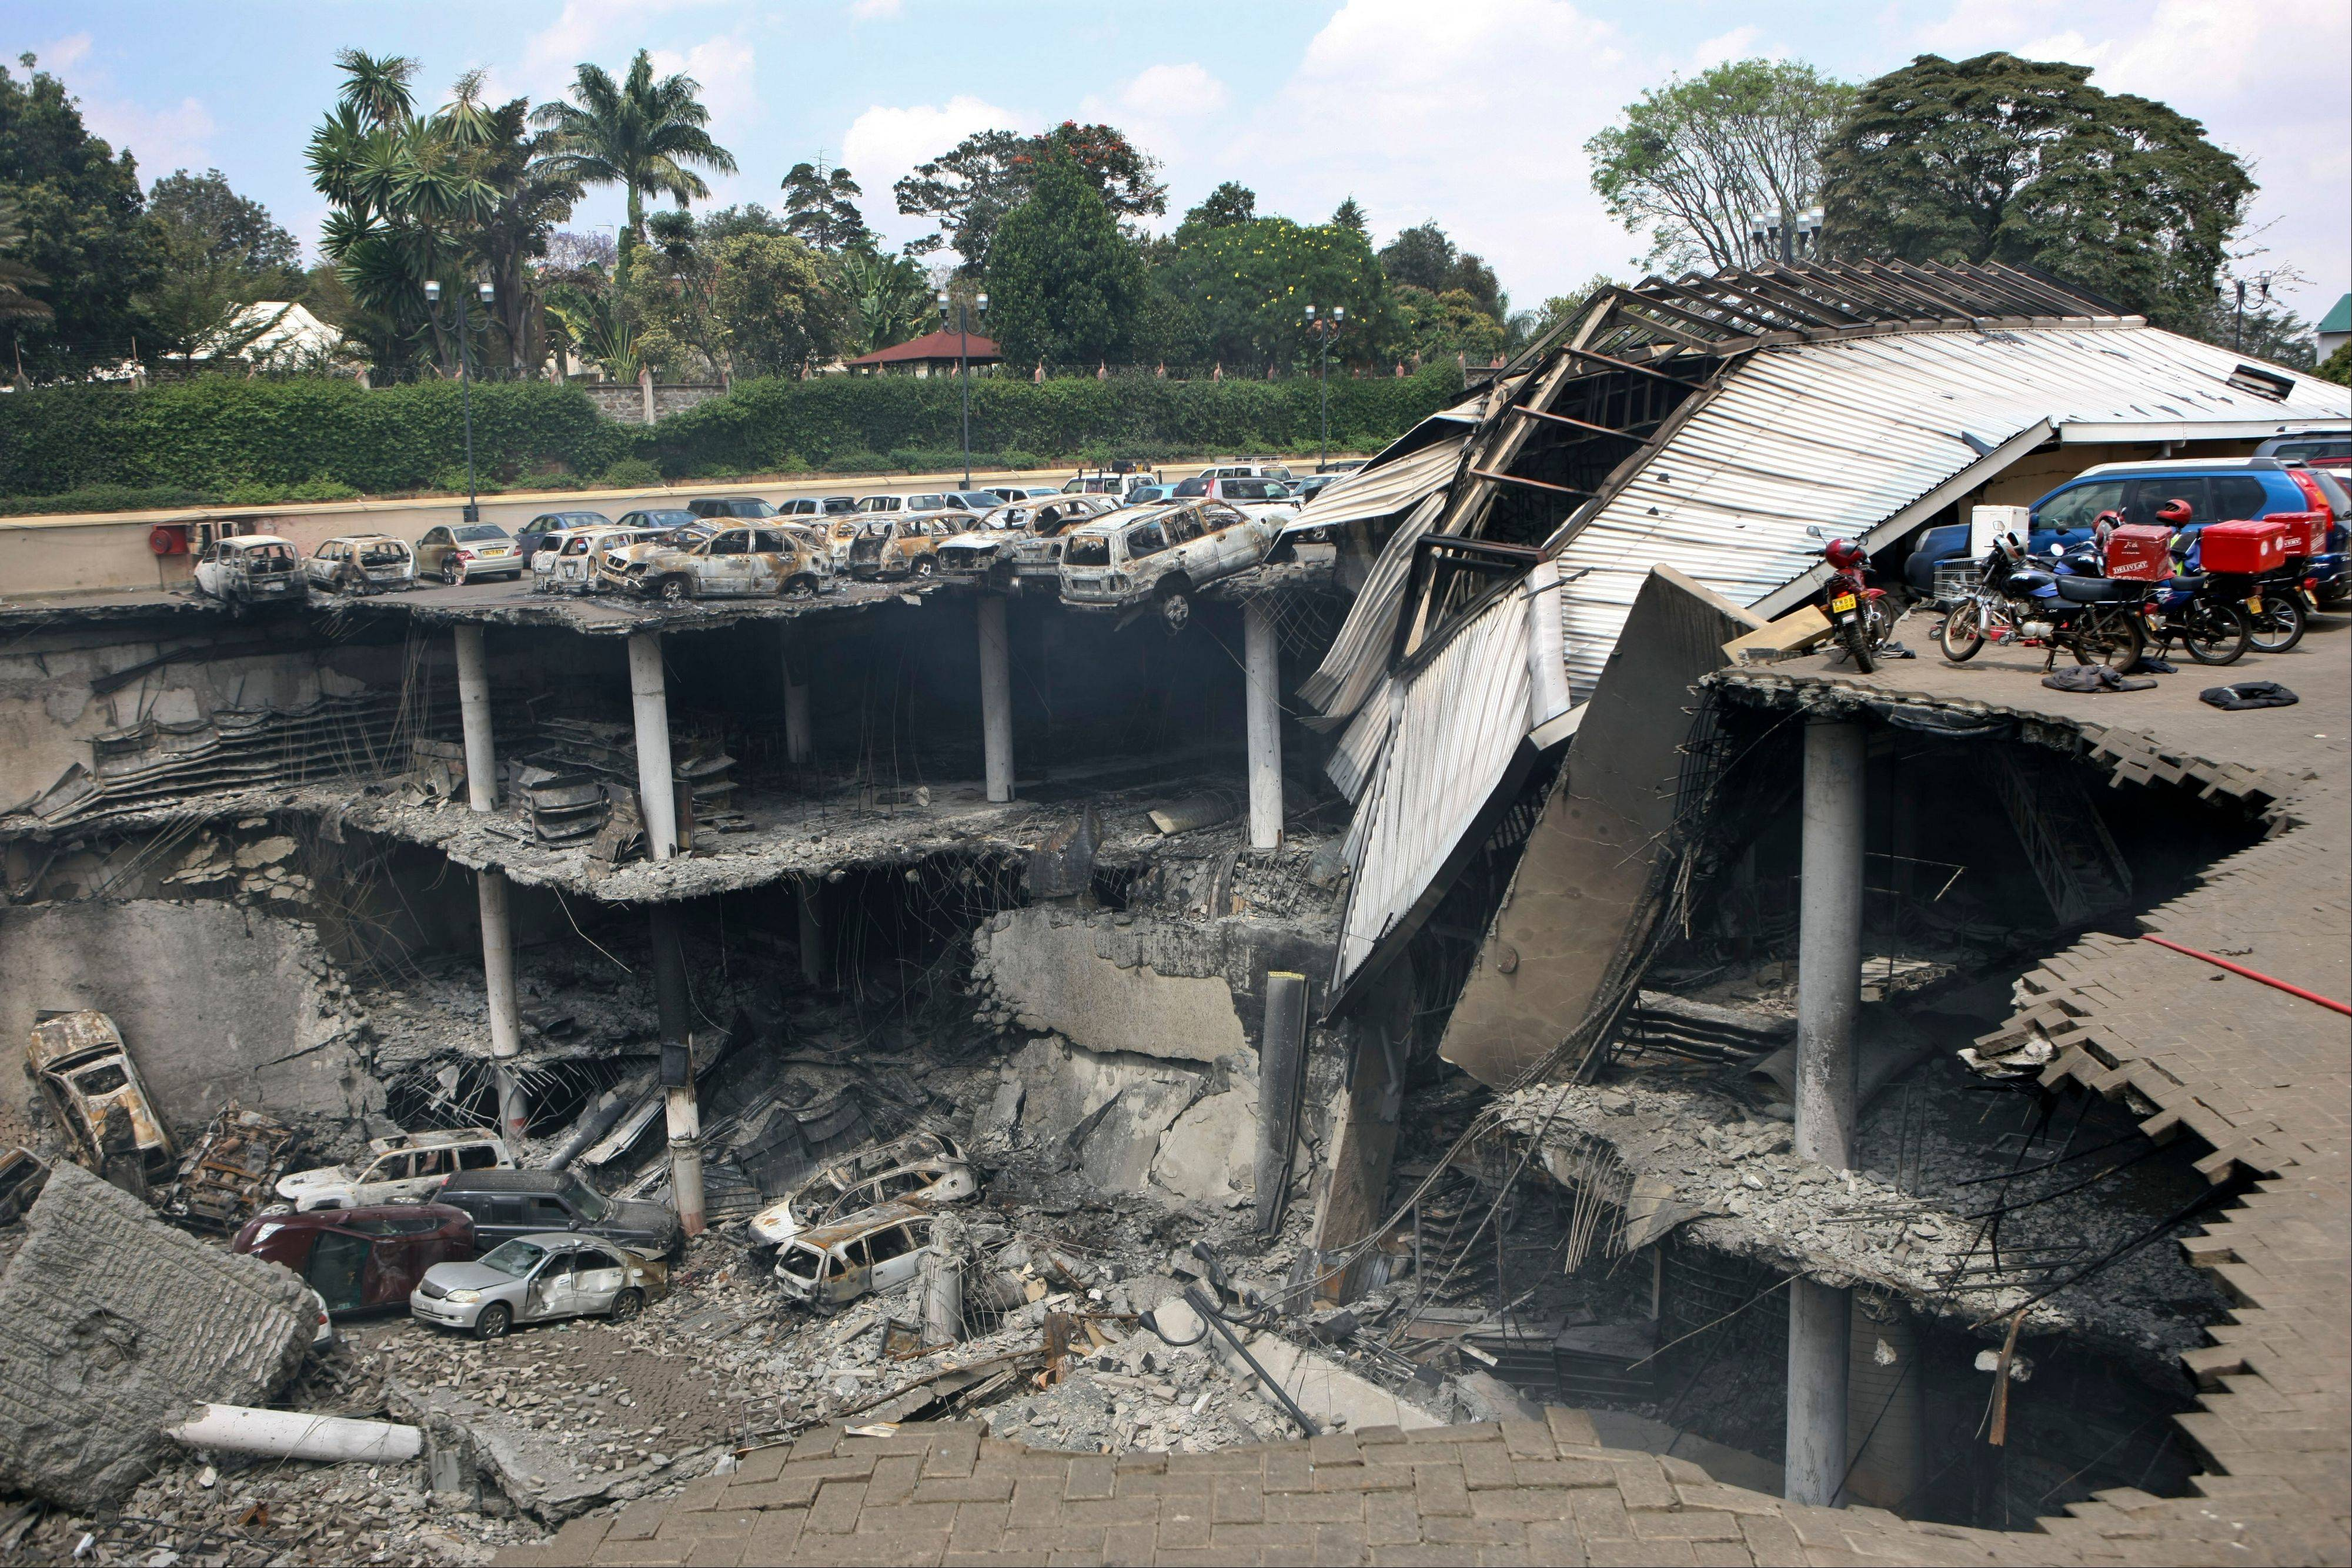 The collapsed upper parking deck atop the Westgate Mall in Nairobi, Kenya, Thursday, Sept. 26, 2013. Kenya�s military caused the massive collapse of three floors of Nairobi�s Westgate Mall during the terrorist siege in which at least 67 people died, a top-ranking government official told The Associated Press.